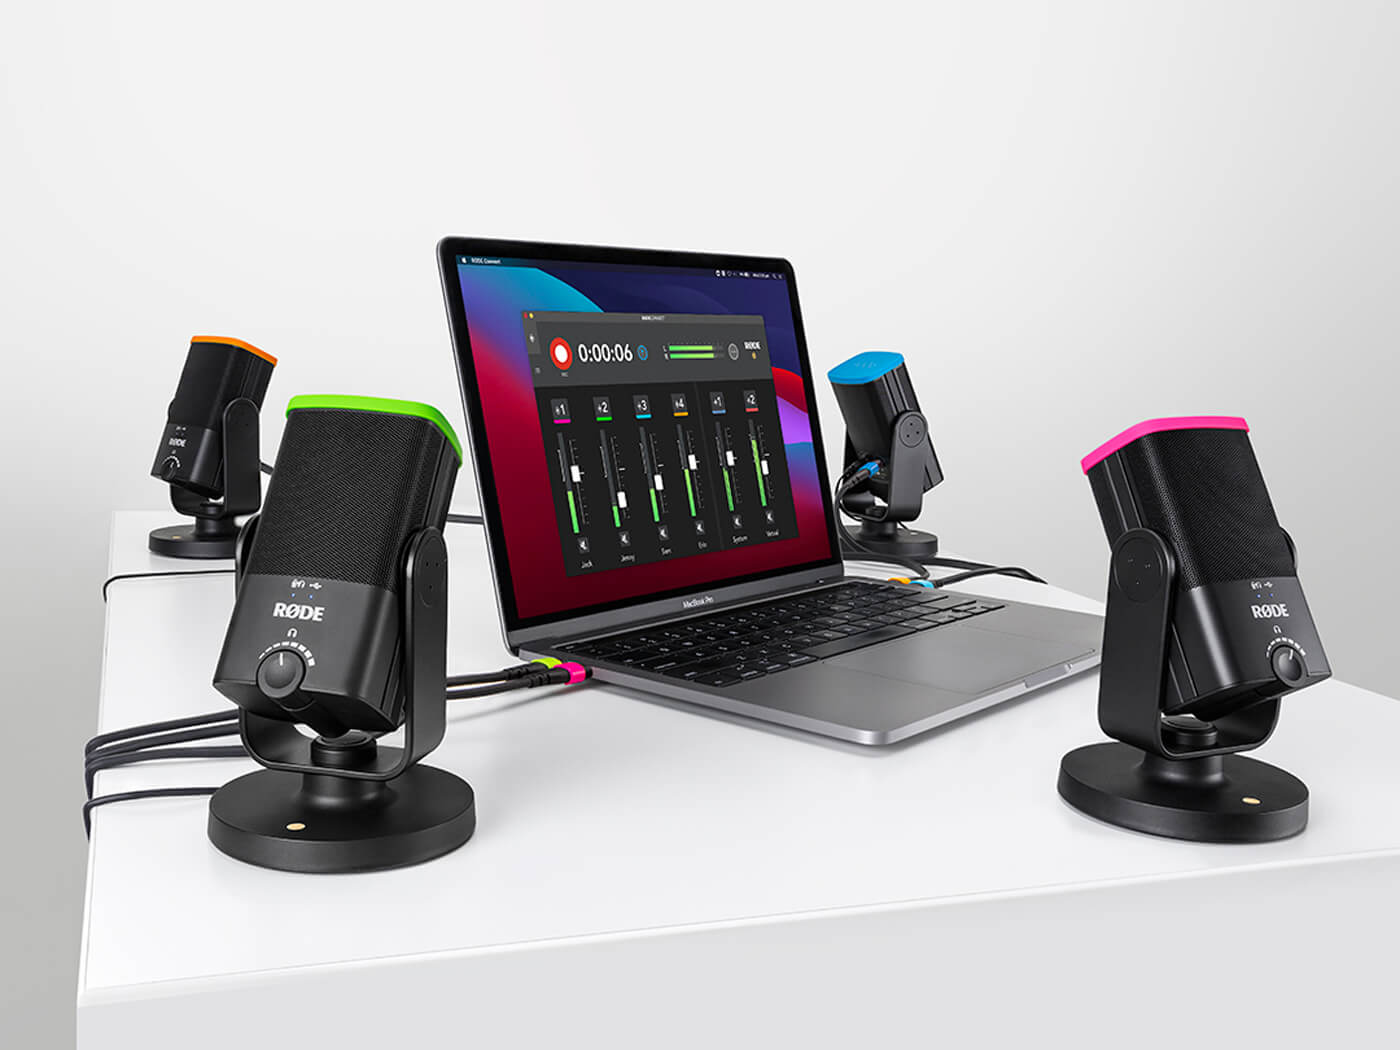 Røde Connect lets you run four NT-USB Minis at once on one computer